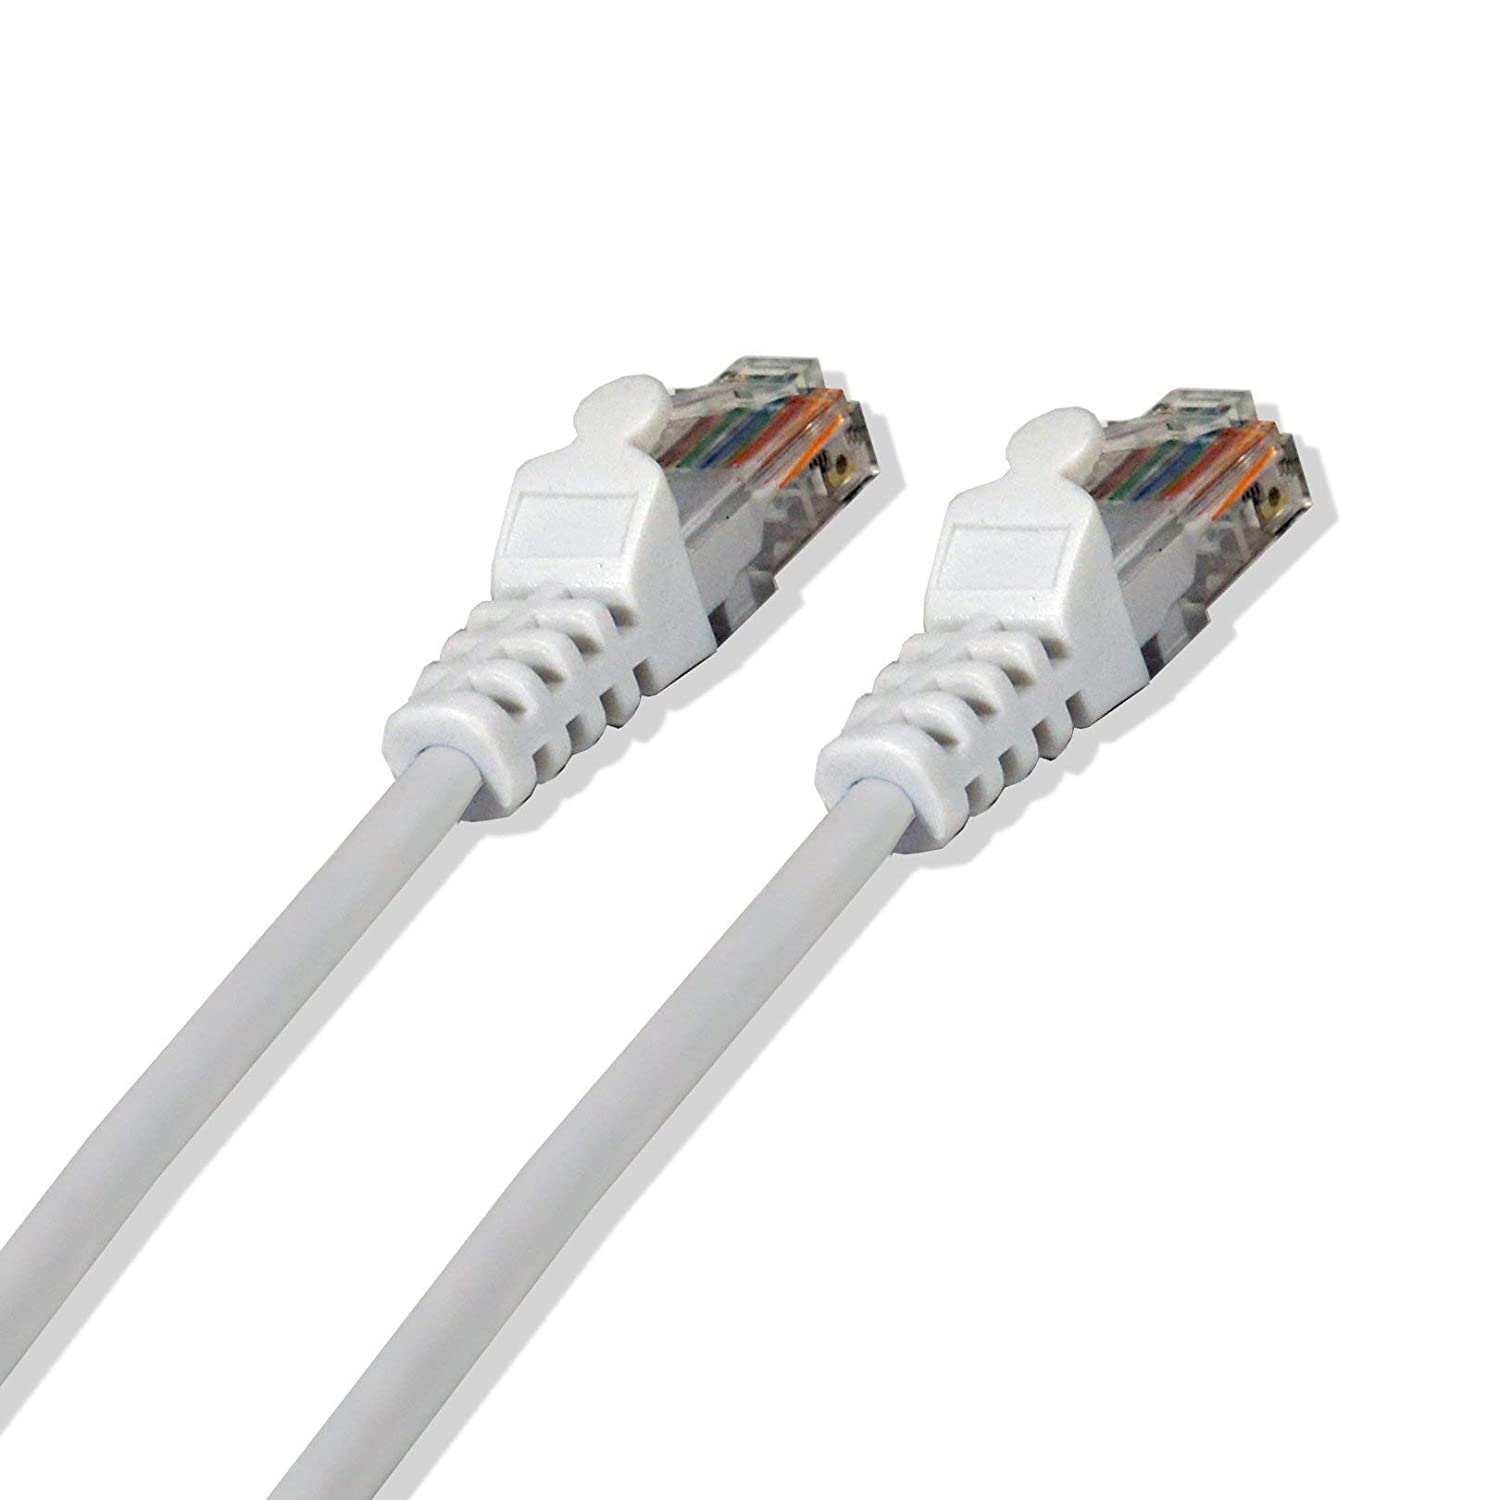 5 Pack LOGICO 75Ft Cat5e Ethernet RJ45 LAN Wire Network Black UTP 75 Feet Patch Cable